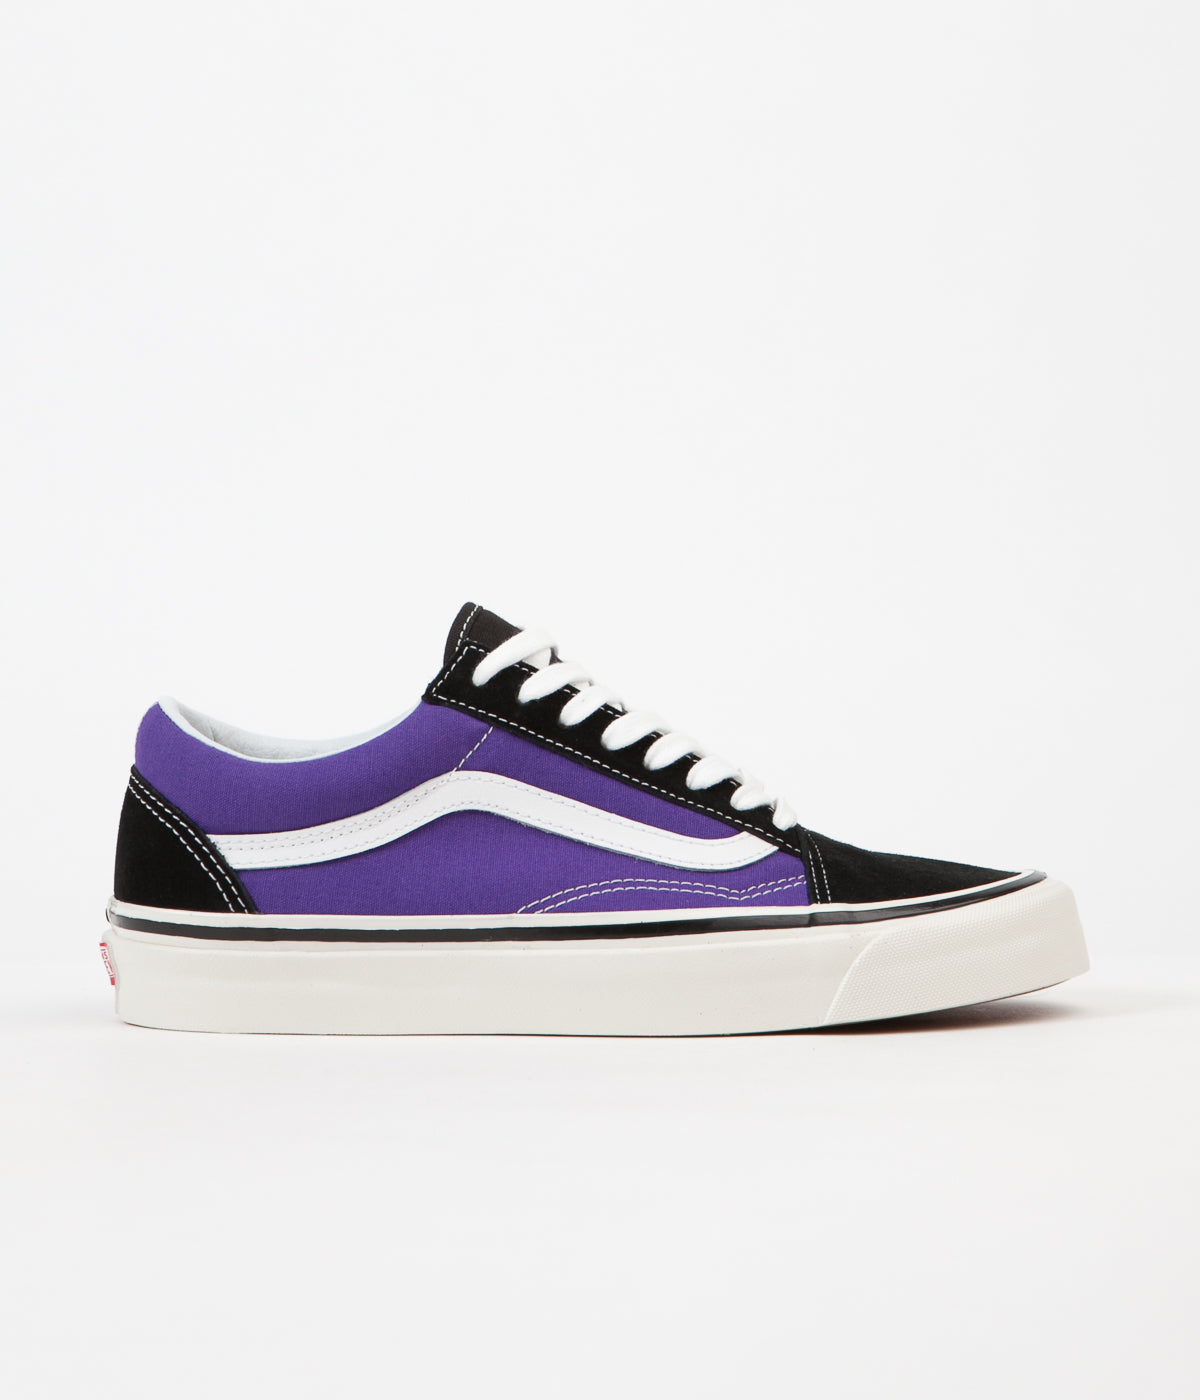 ... Vans Old Skool 36 DX Anaheim Factory Shoes - Black   OG Bright Purple  ... f7f5606a9a3b